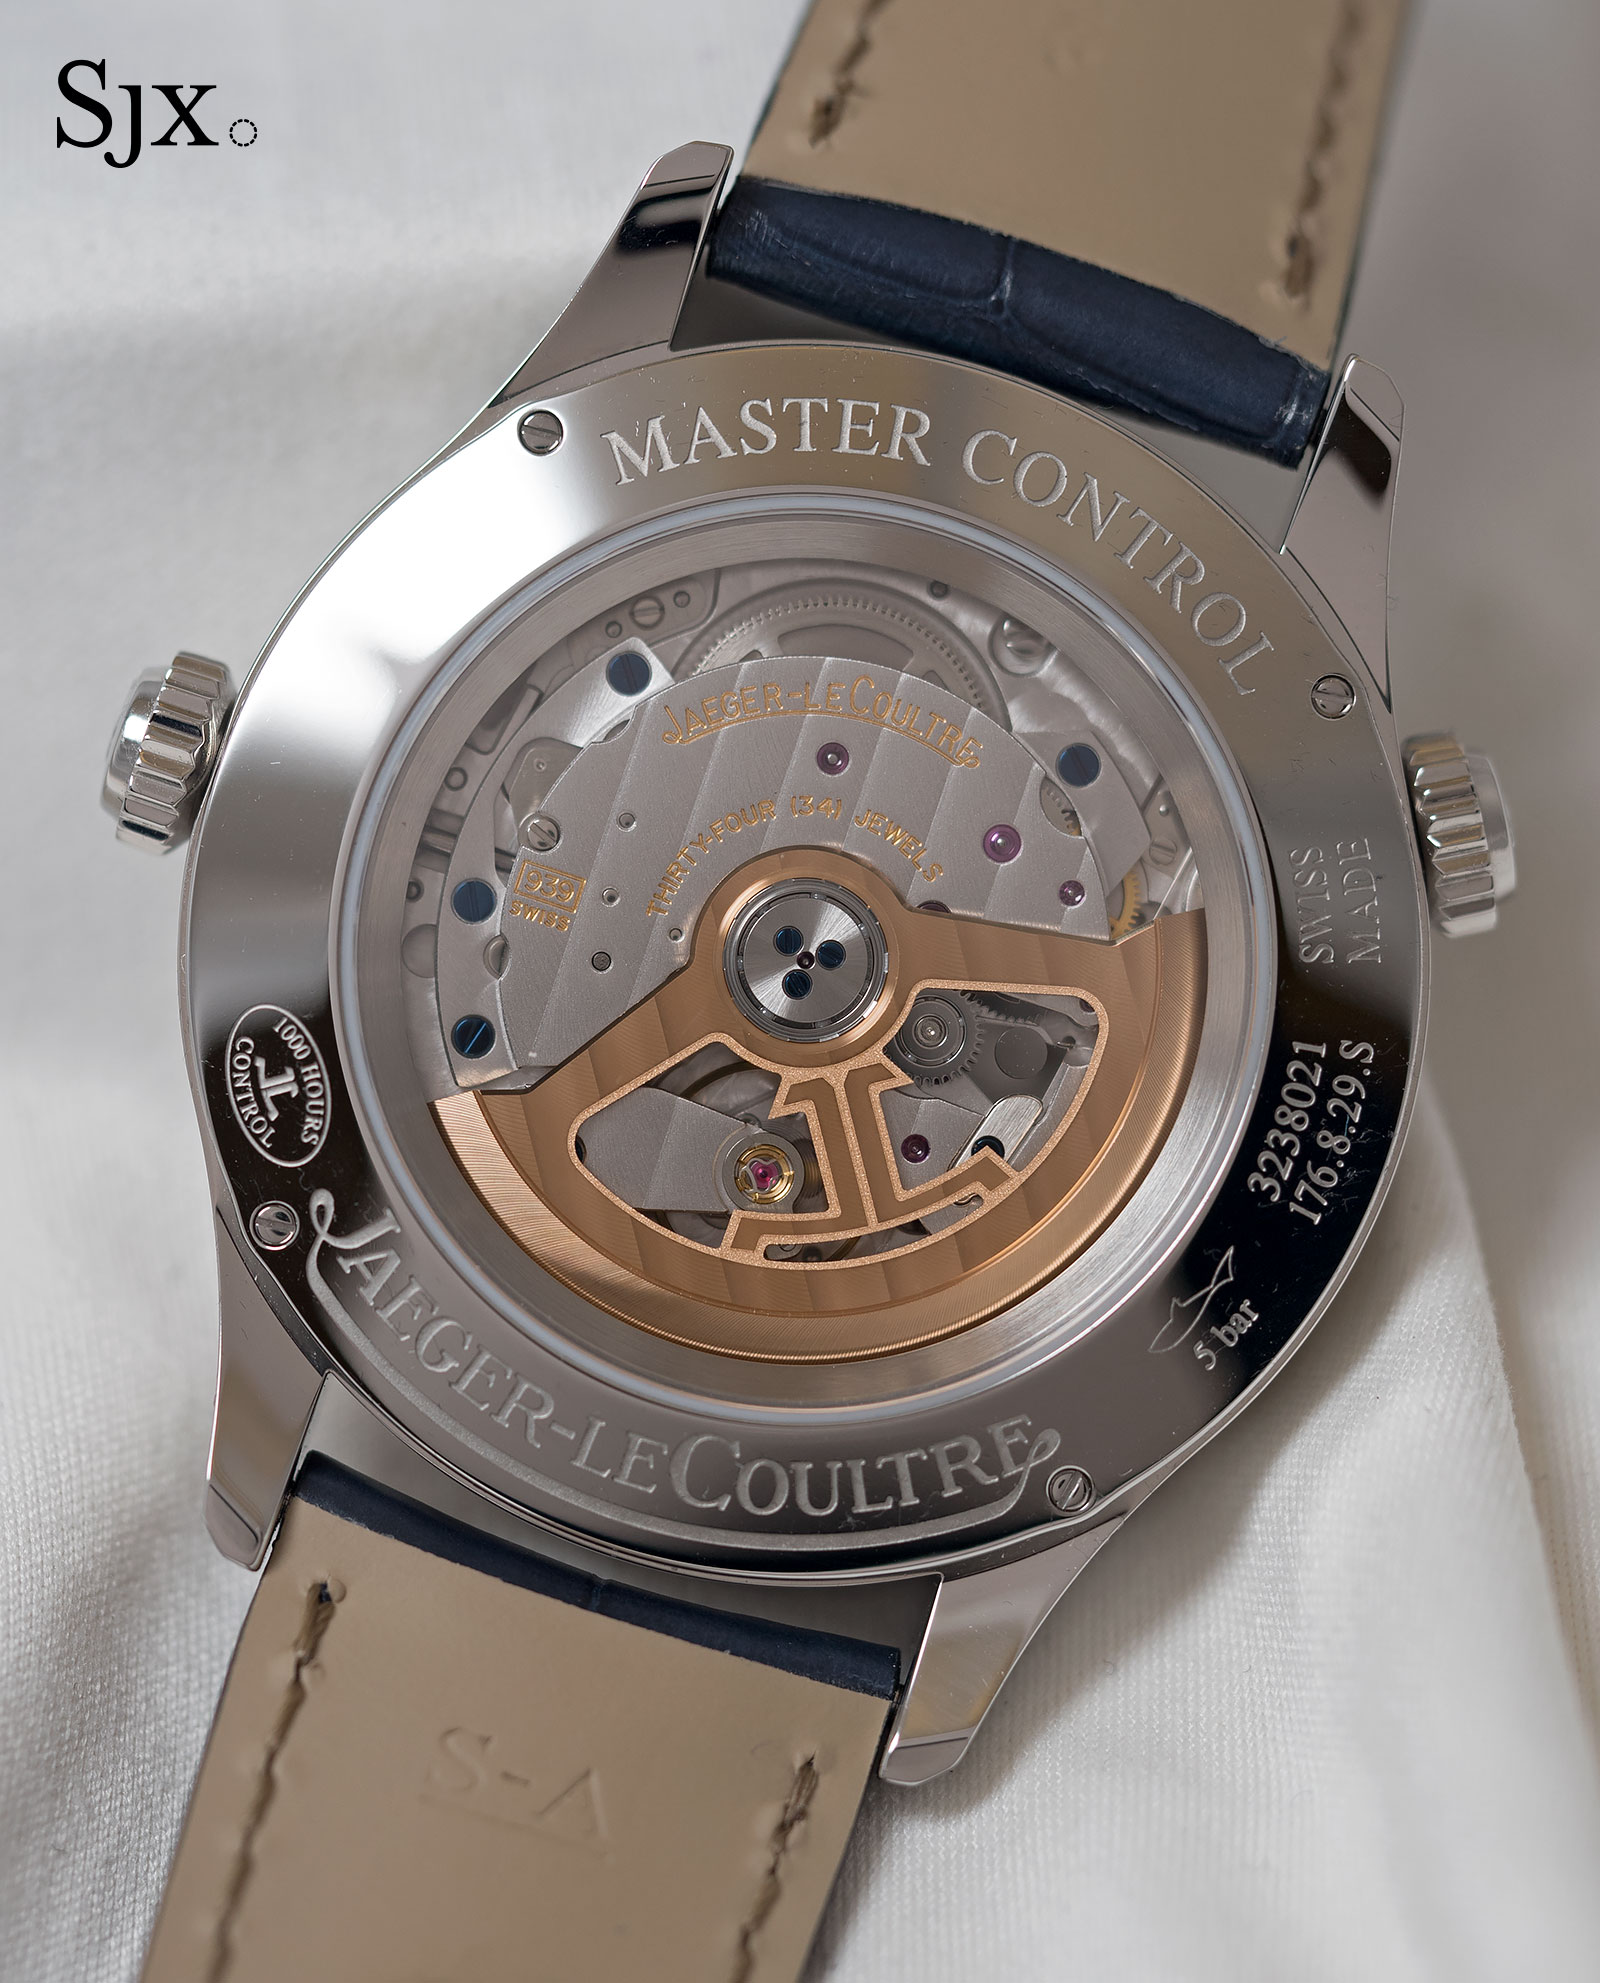 Jaeger-LeCoultre Master Control Geographic sector dial 3